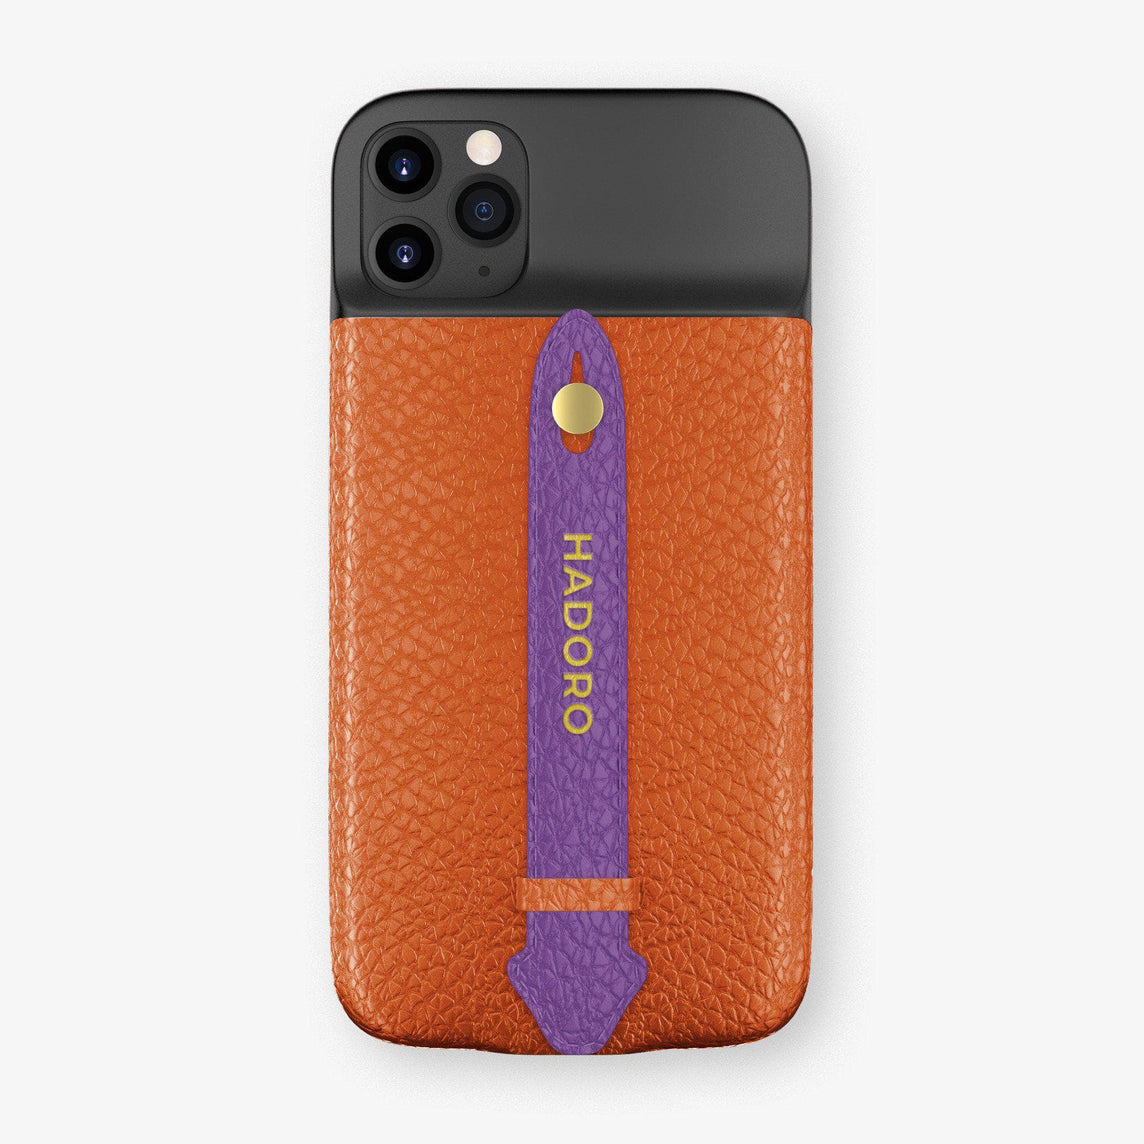 Calfskin Battery Finger Case for iPhone 11 Pro Max | Orange/Purple - Yellow Gold without-personalization